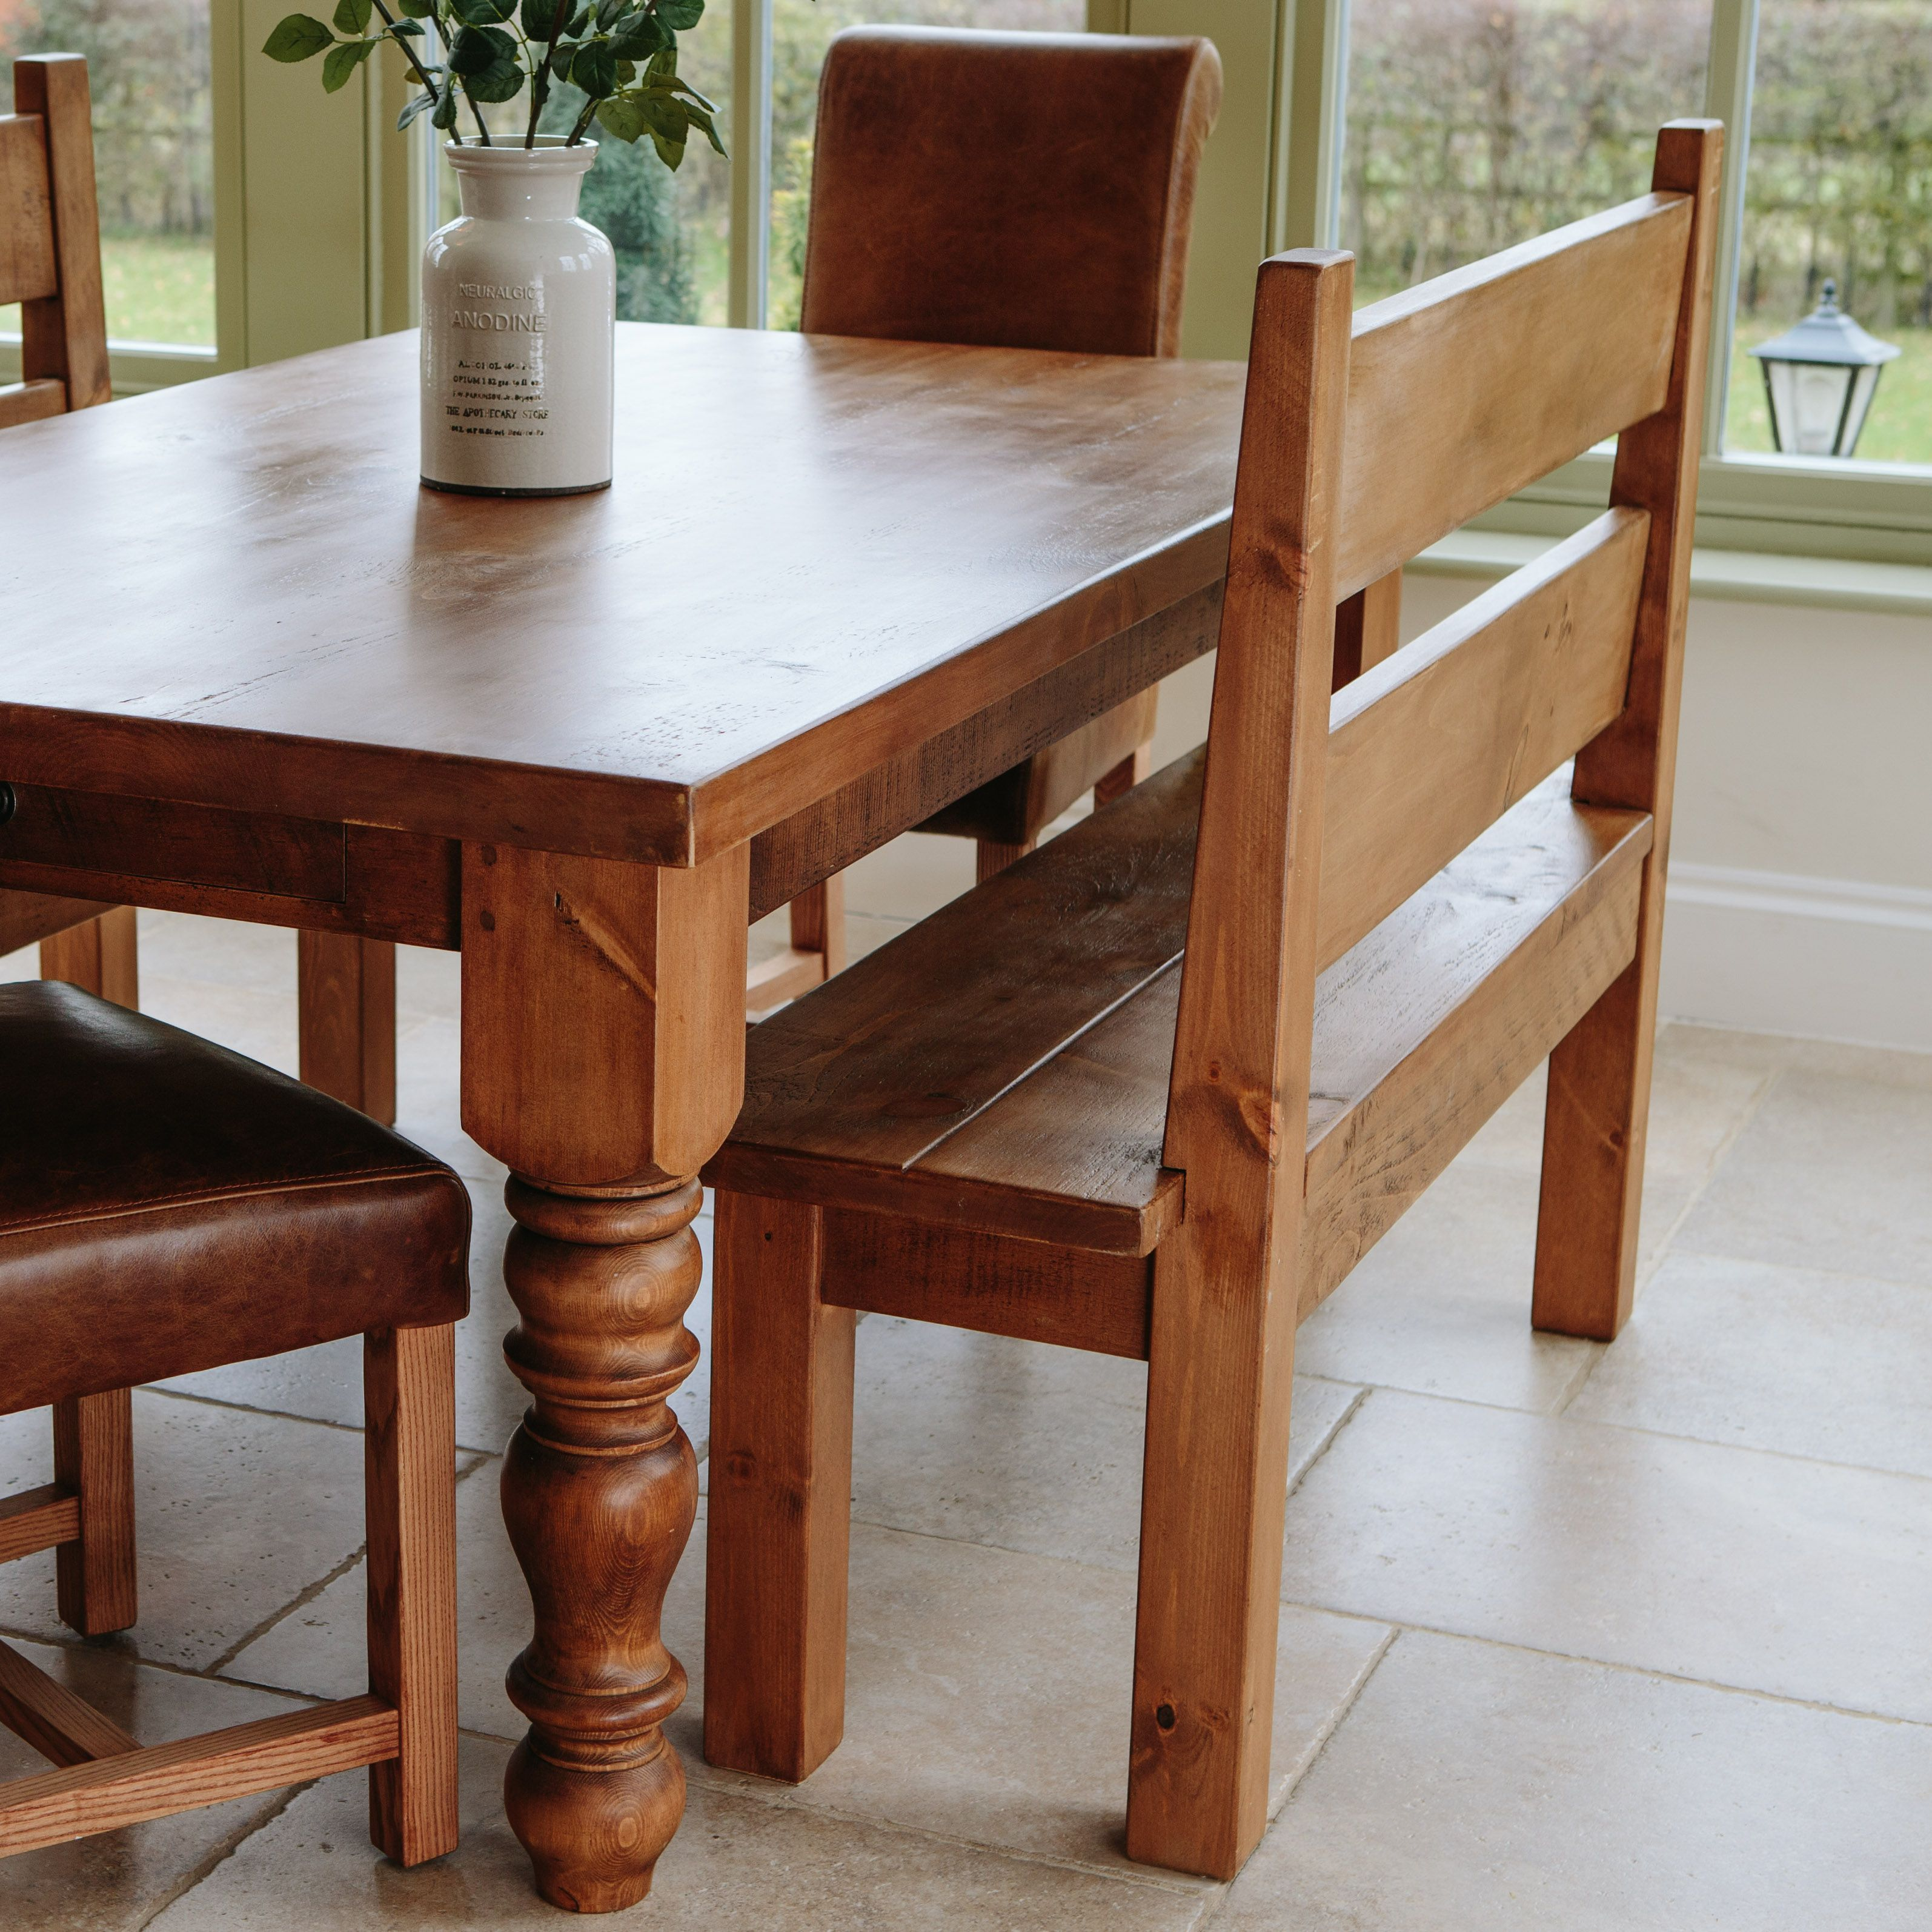 Hand waxed Rugged Pew Bench & Chunky Hardwick Dining Table